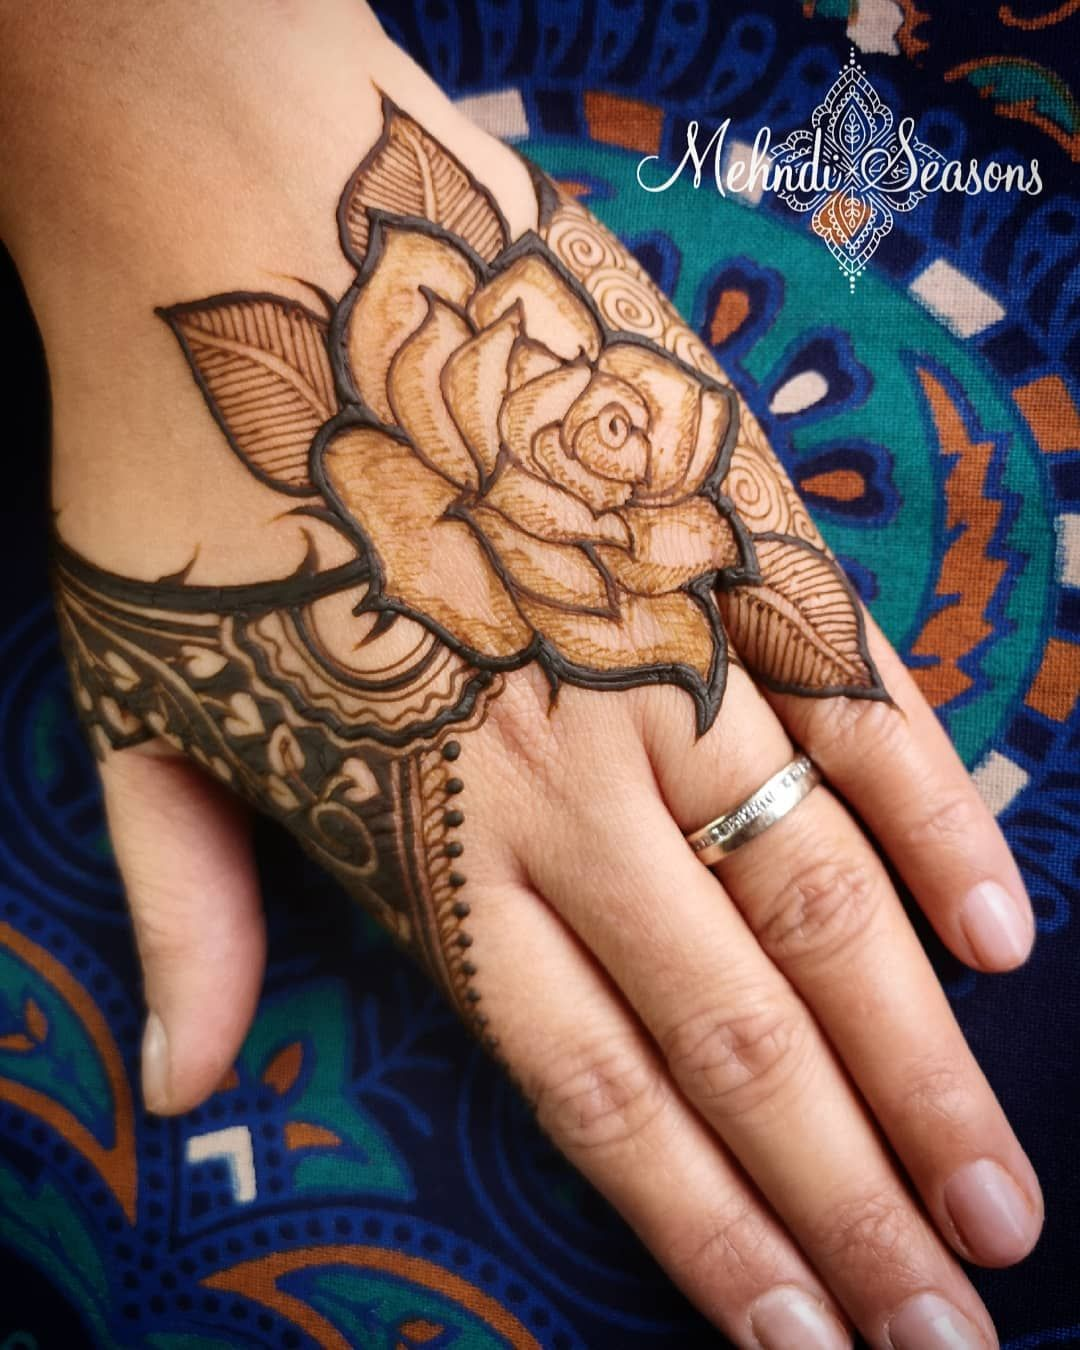 Image May Contain 1 Person Closeup Mehndi Designs Mehndi Designs For Girls Rose Mehndi Designs